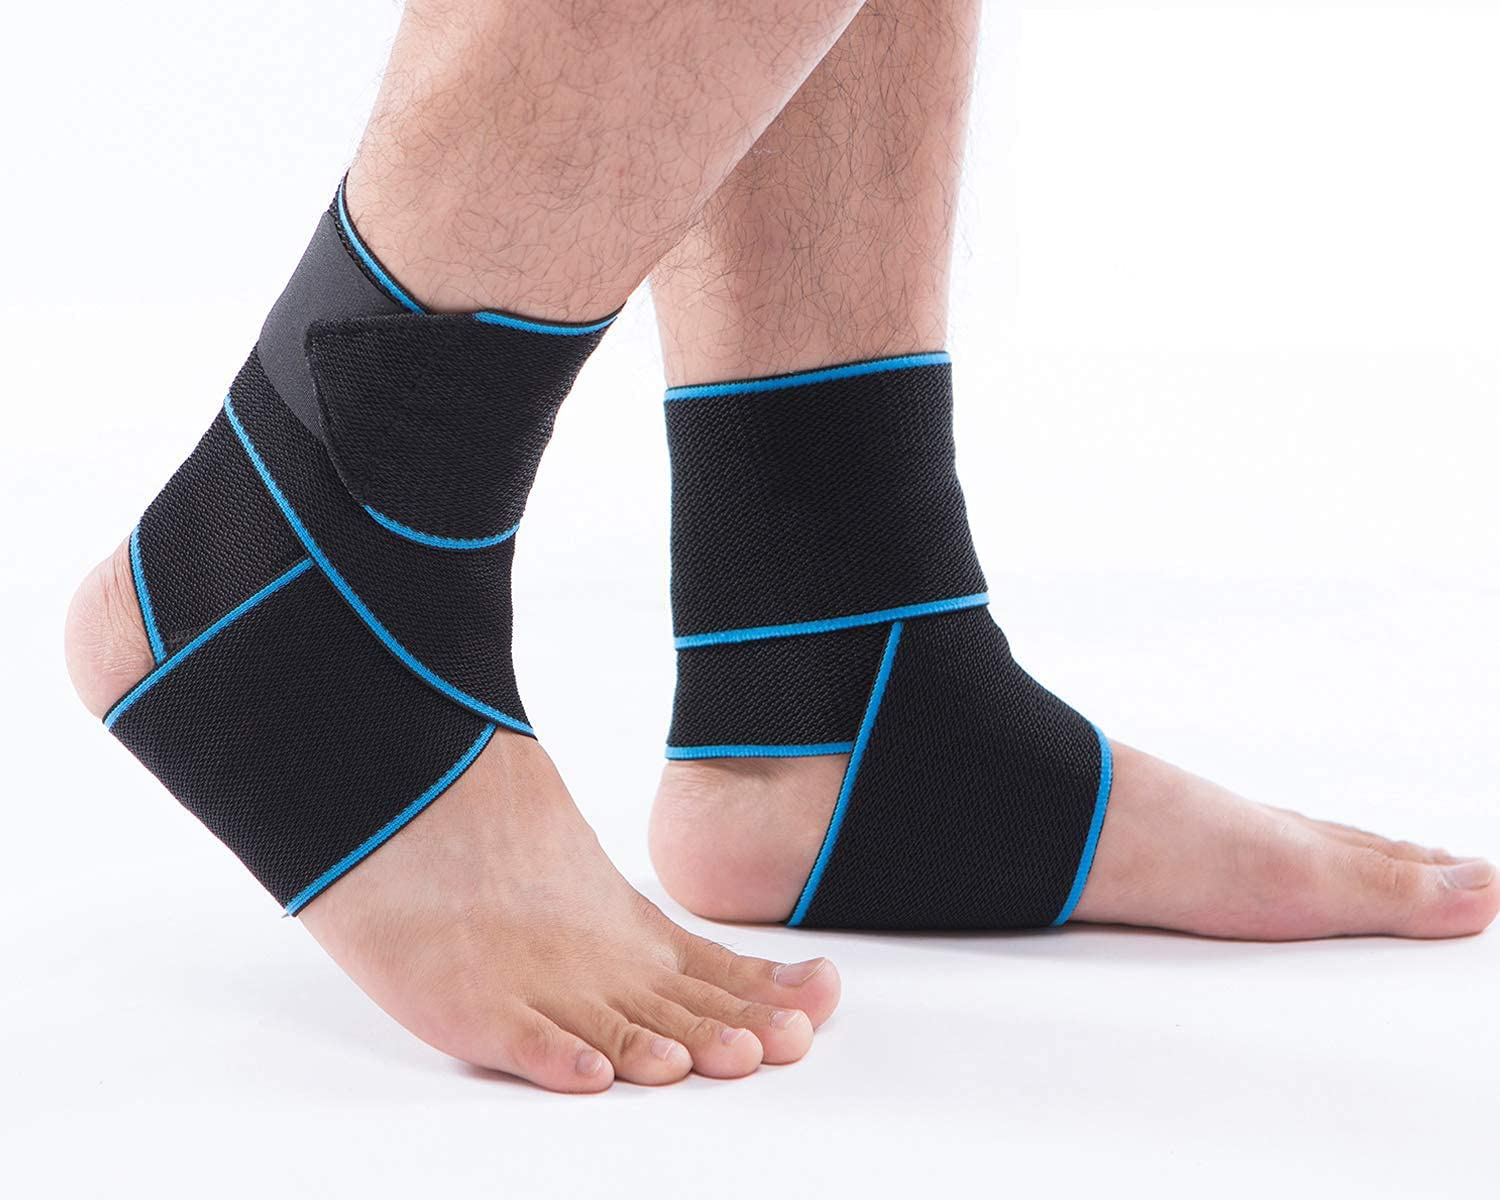 Ankle Brace Breathable Ankle Support Adjustable Ankle Stabilizer with Compression Wrap Support, Suitable for Men & Women, Sports (2 Pack)-One Size Fits All (Blue) : Sports & Outdoors